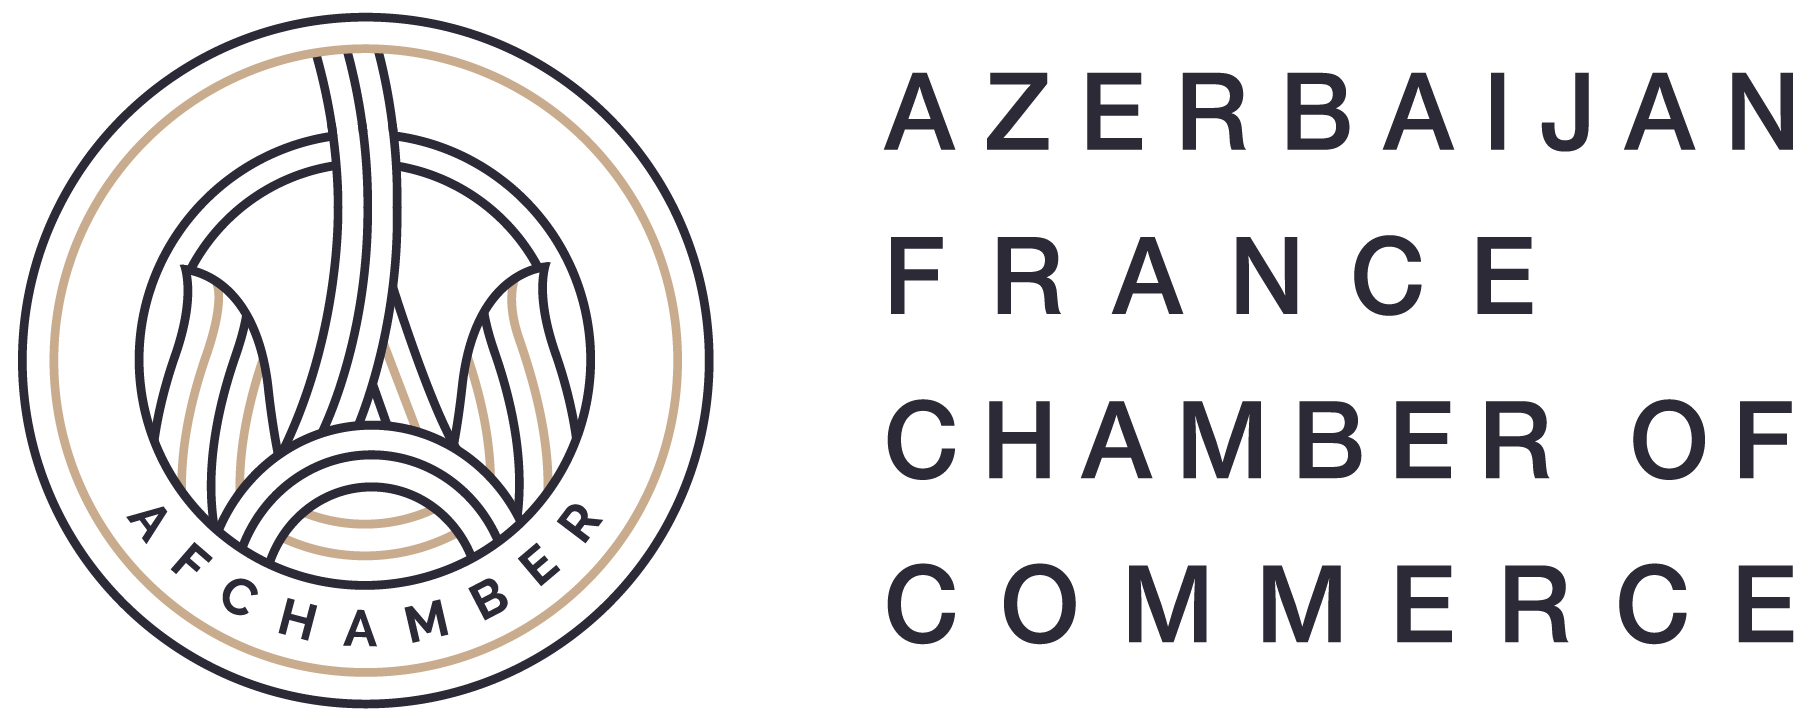 AFCHAMBER.COM – The Azerbaijan-France Chamber of Commerce and Industry